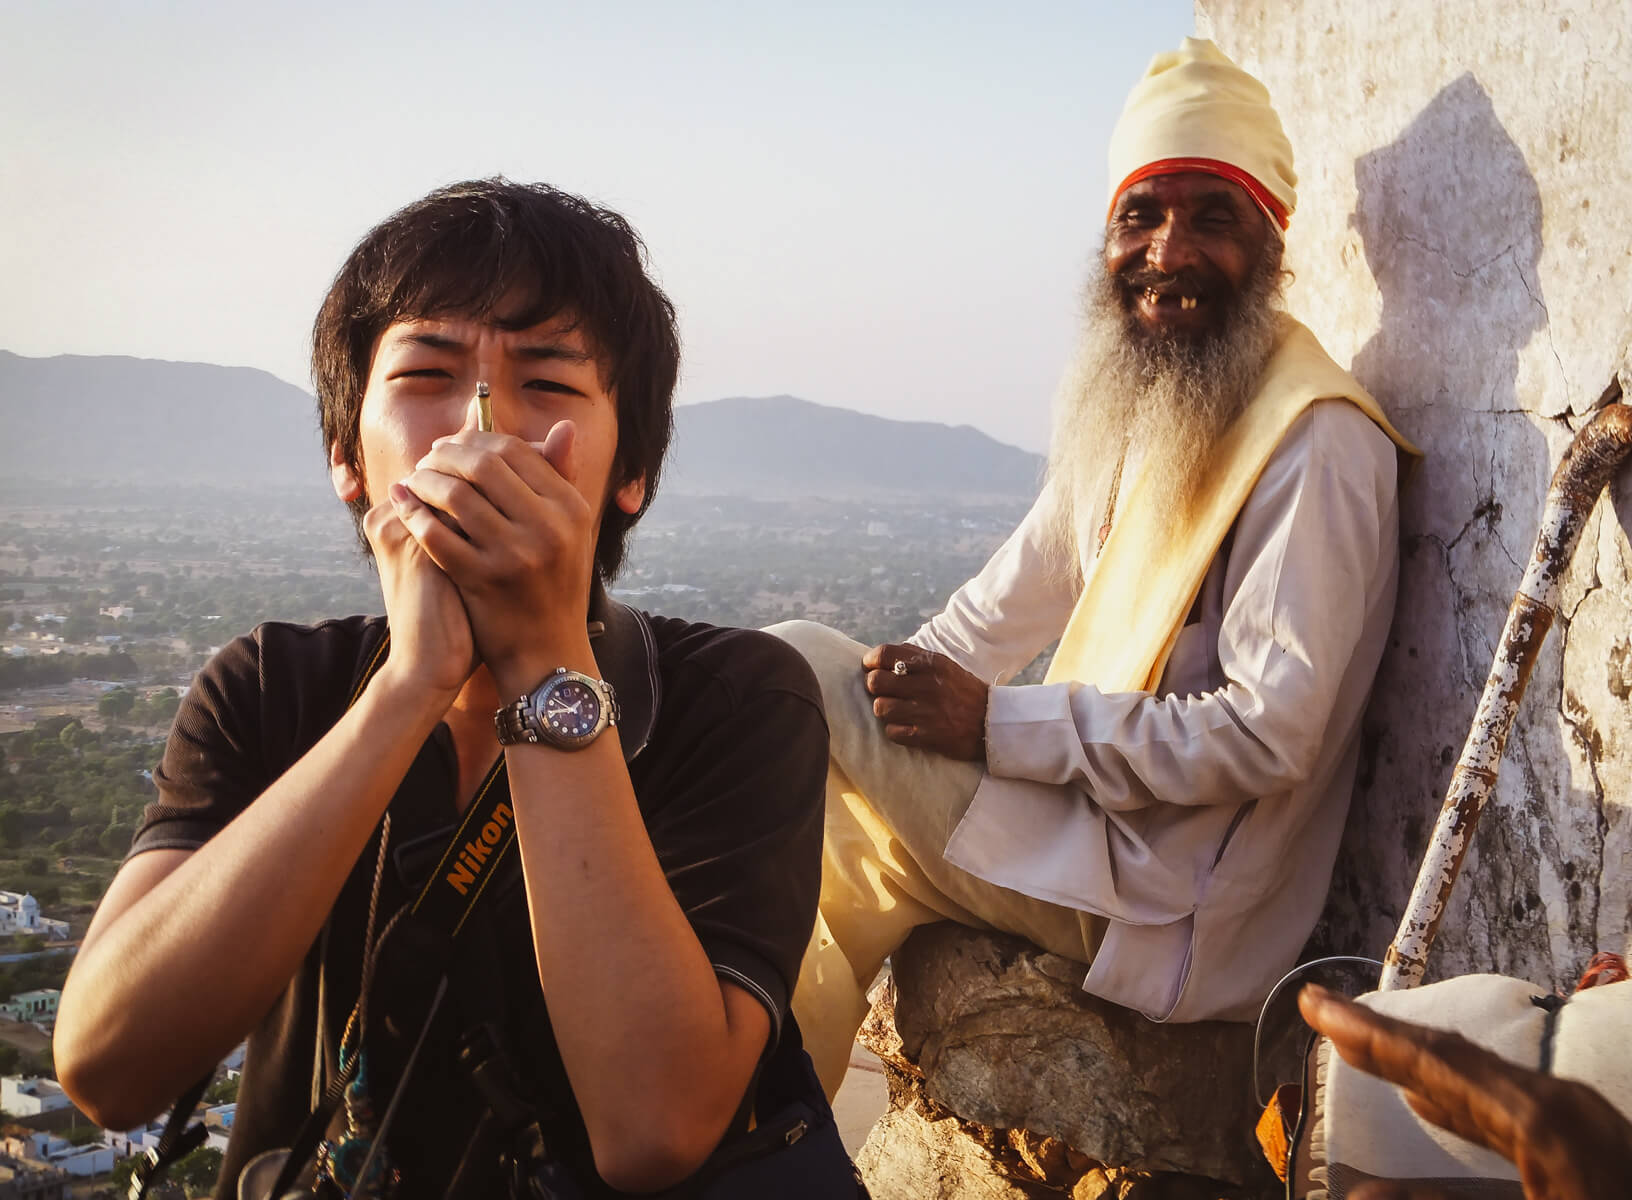 A backpacker travelling India smokes weed with an old local man